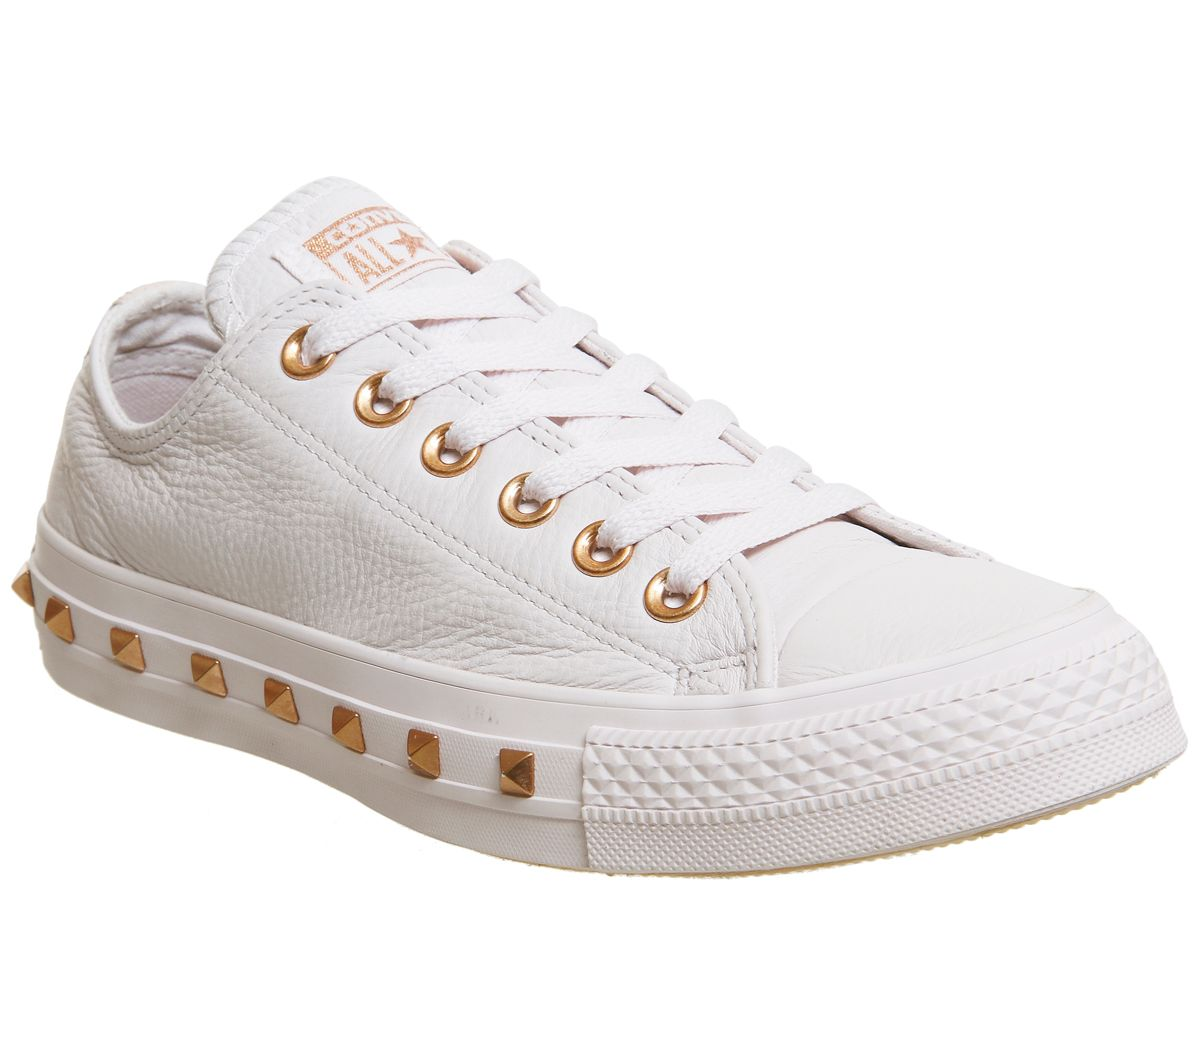 Converse All Star Low Leather Trainers, Multi-Coloured